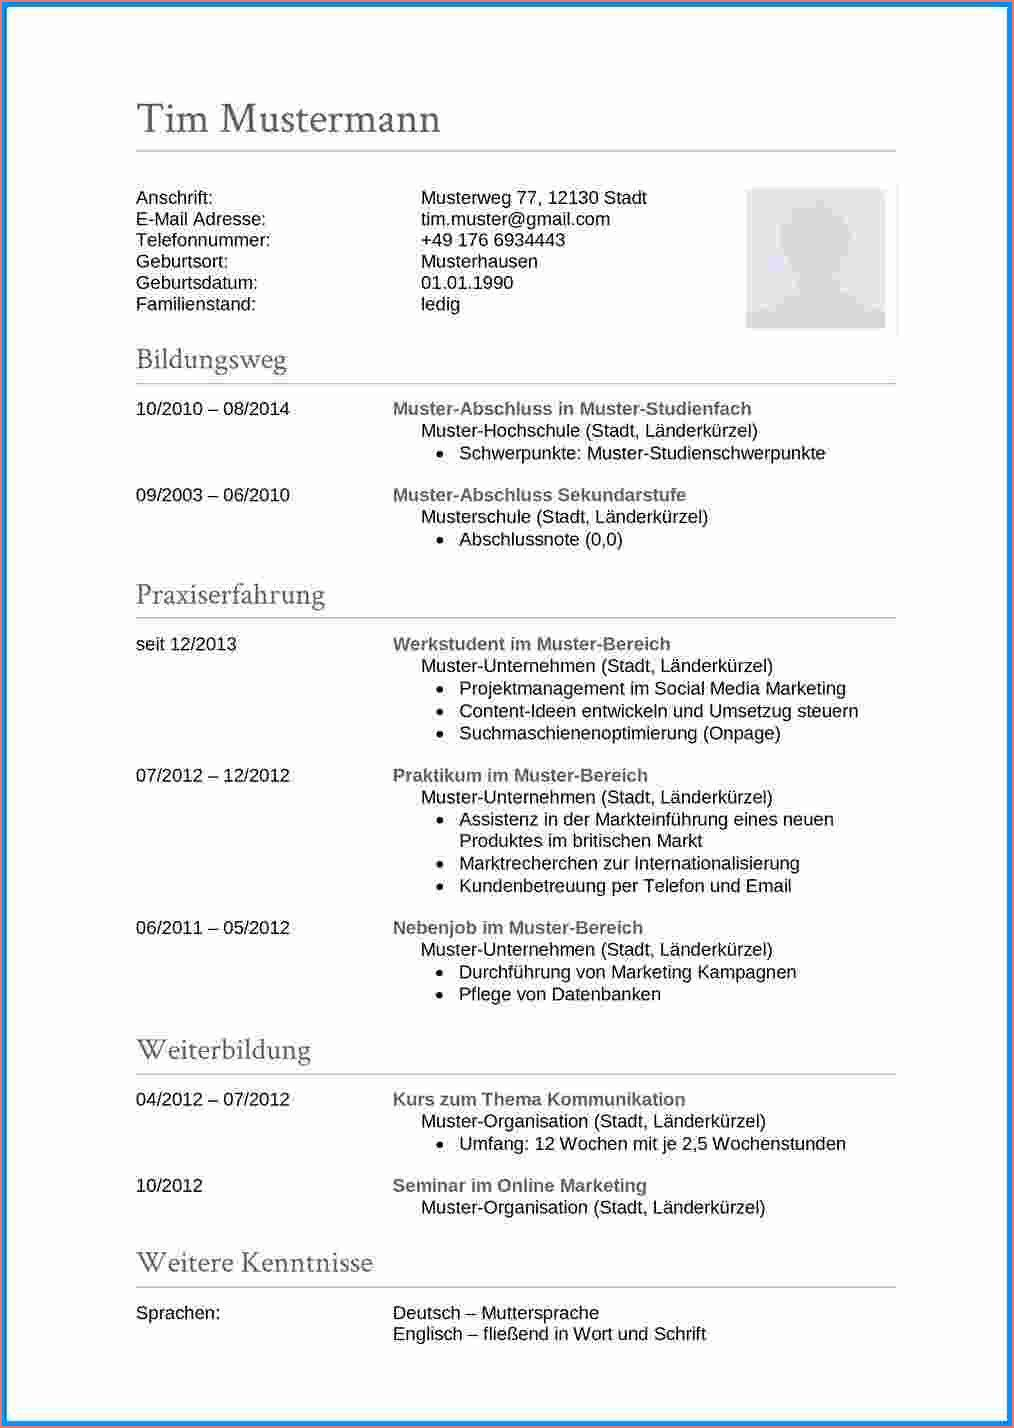 14 Hervorragend Lebenslauf Vorlage Englisch Fotos in 2020 | Resume words,  Types of resumes, Resume template